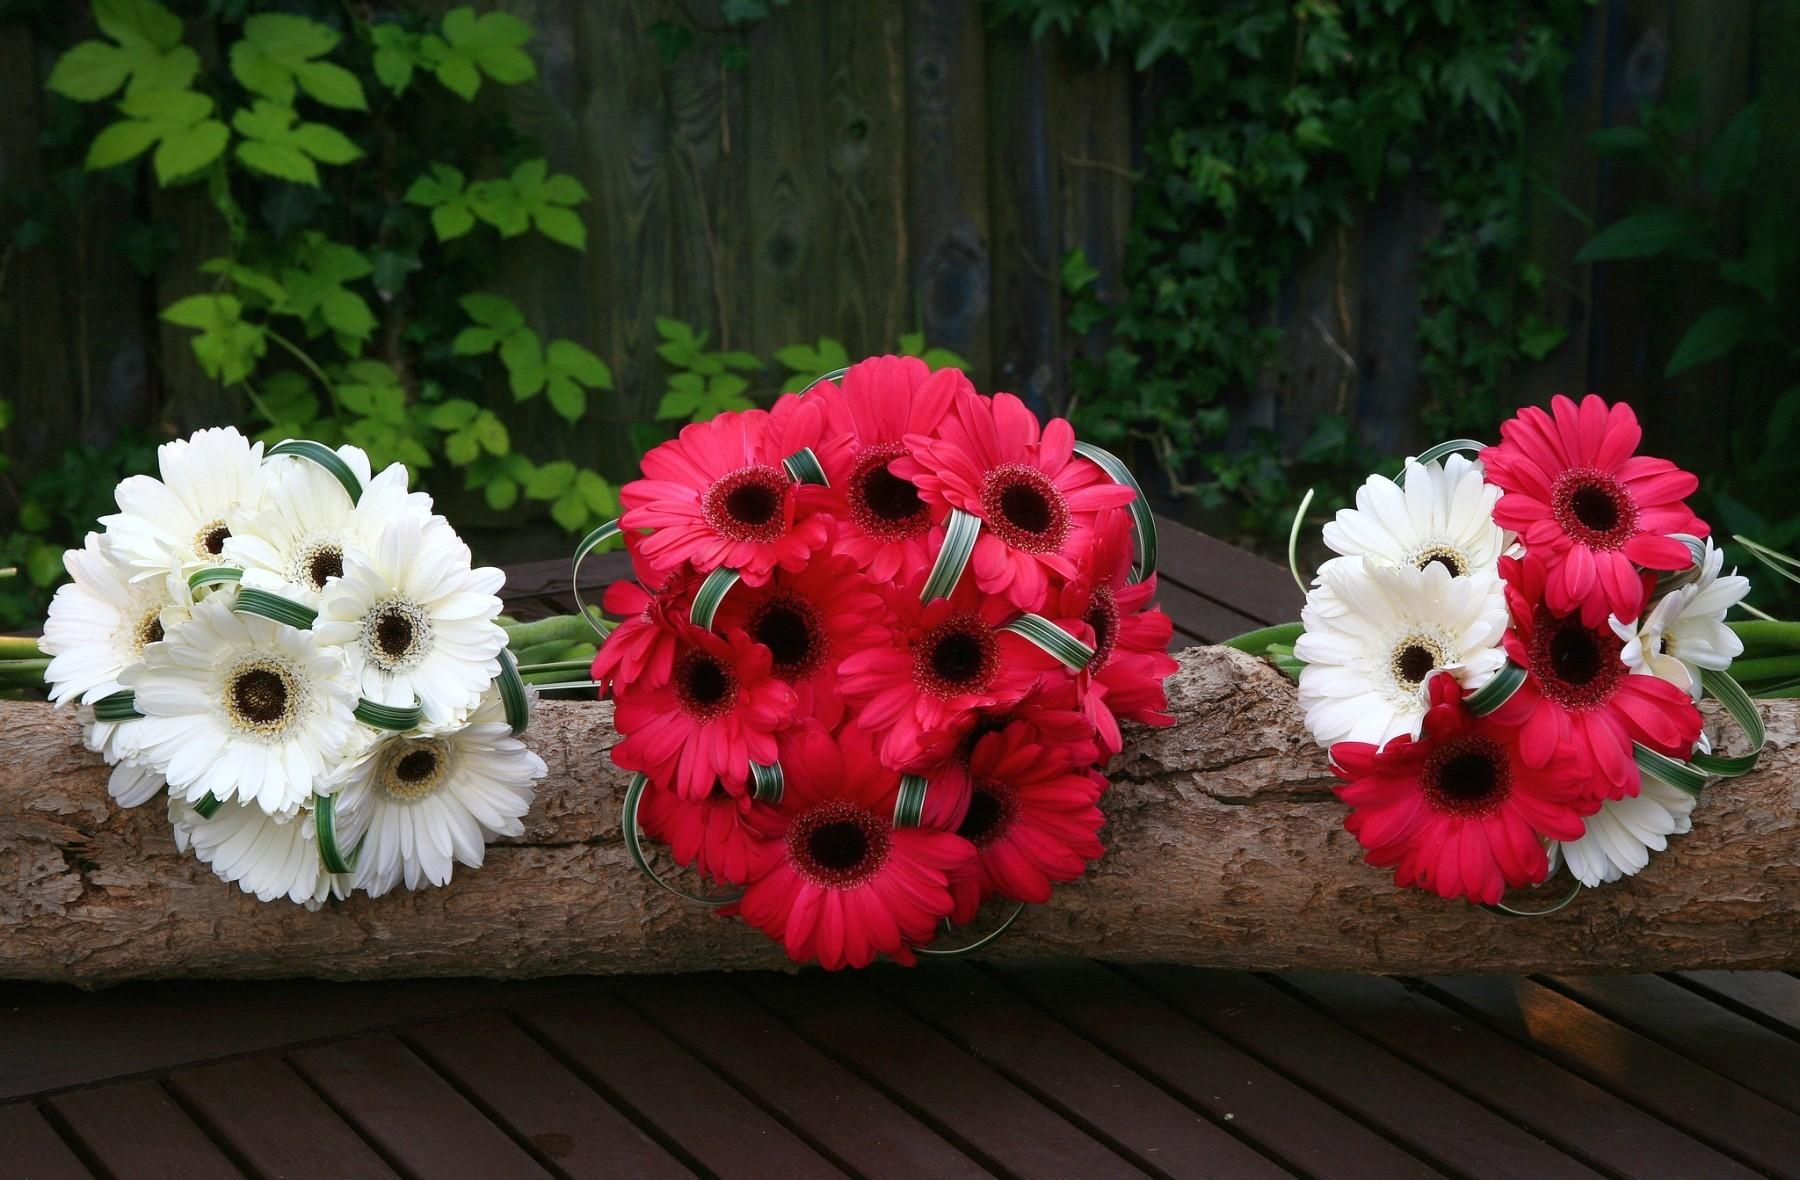 125509 download wallpaper Flowers, Log, Gerberas, Bouquets screensavers and pictures for free